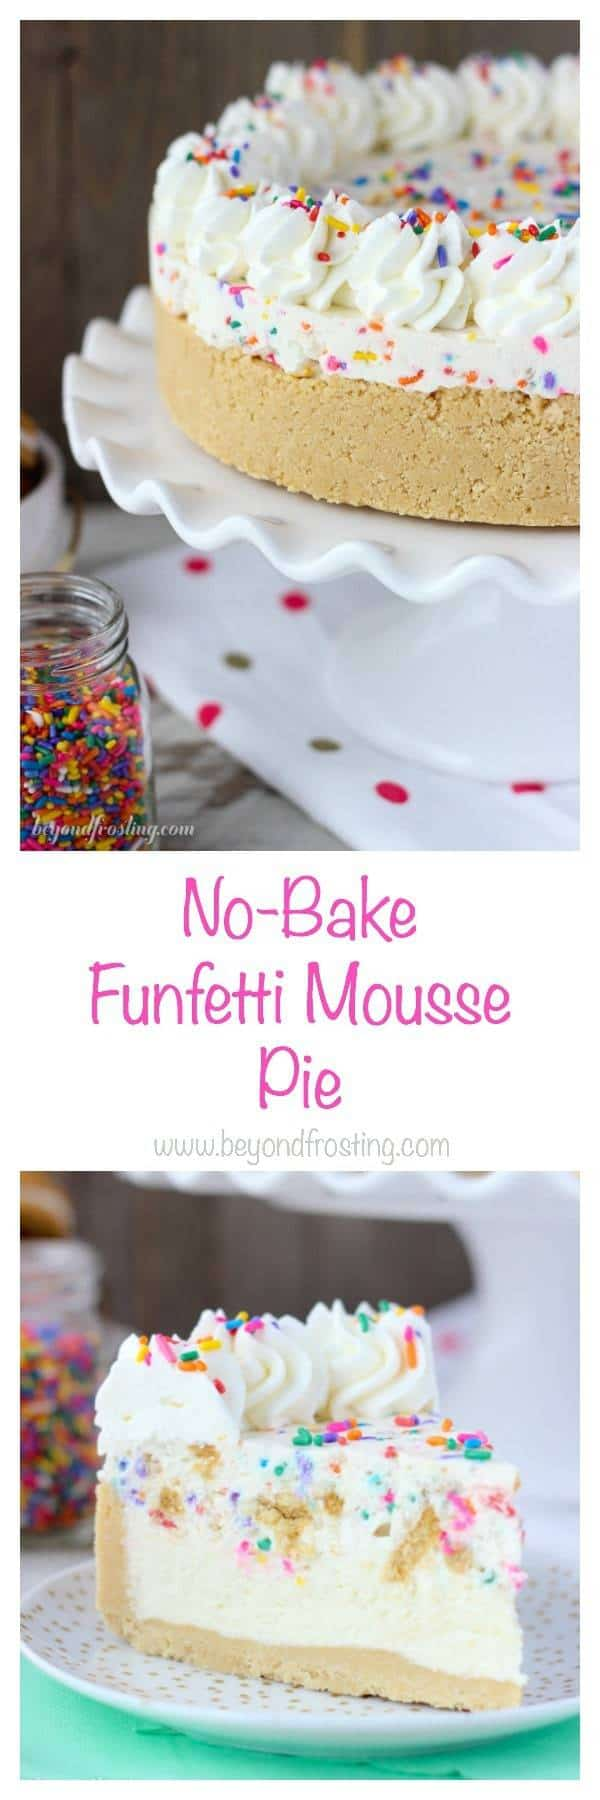 No-Bake Funfetti Mousse pie is everything you dream of. It starts with a thick Oreo crust, with a layer of white chocolate mousse and another layer of Oreo Funfetti Mousse made with cake batter whipped cream!